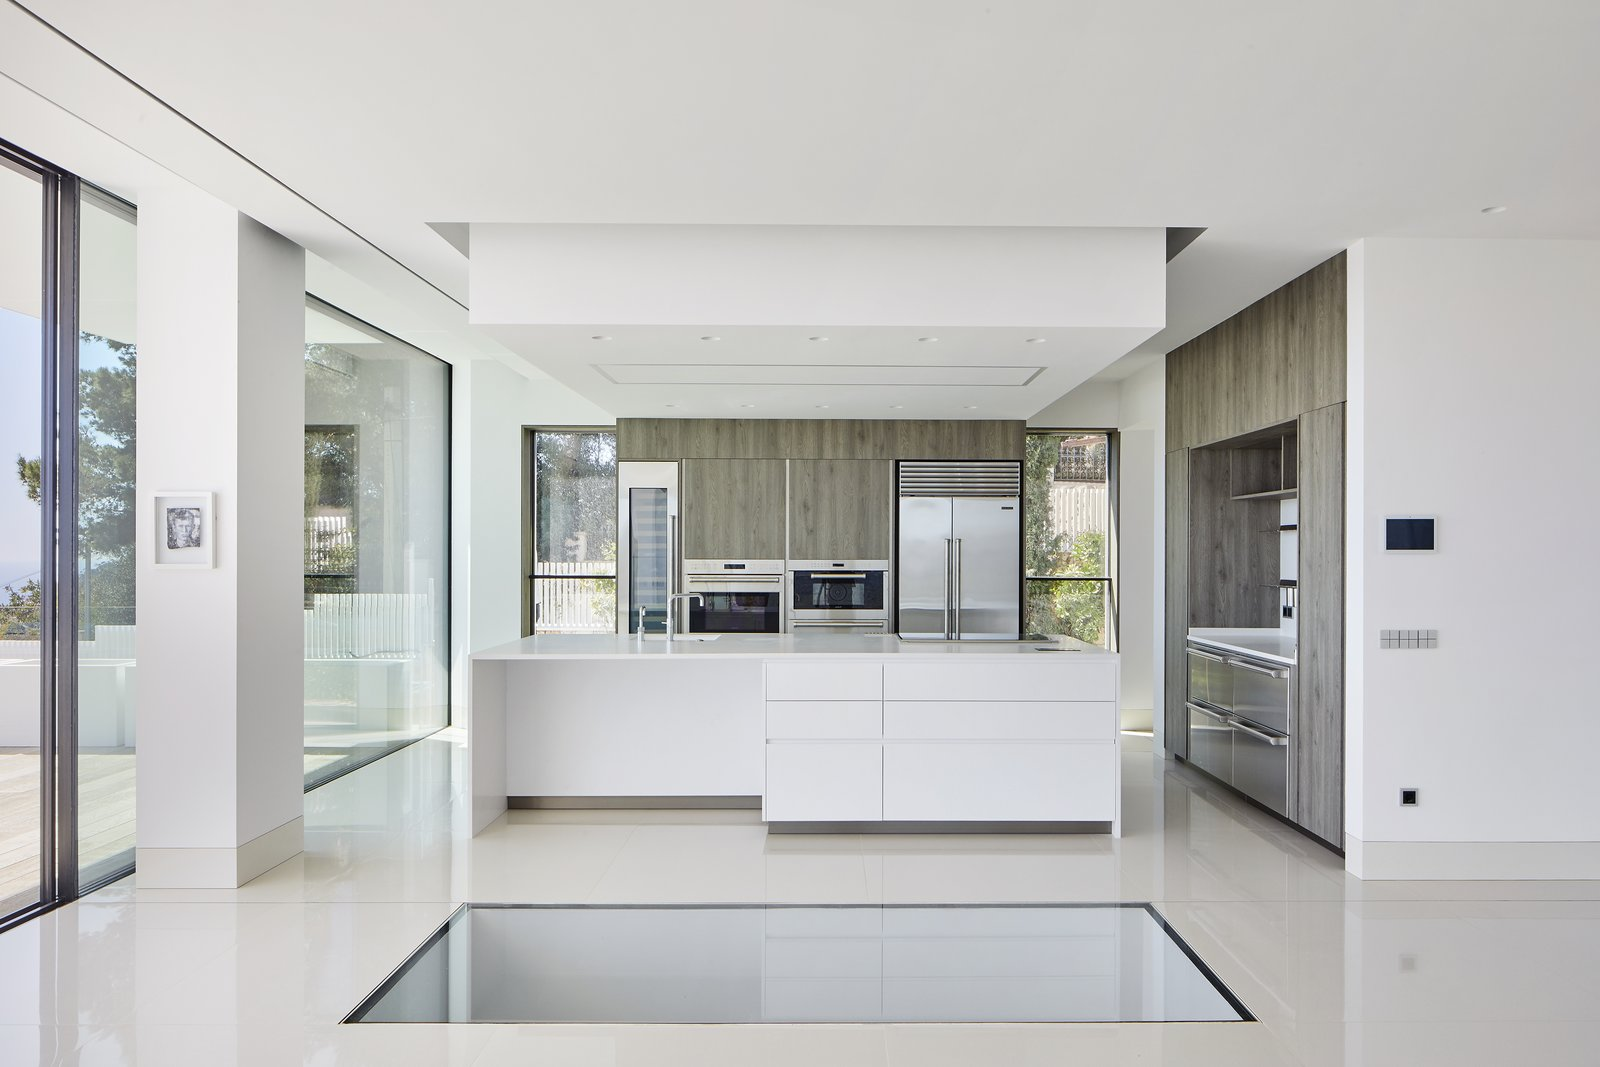 Kitchen, Wall Oven, White, Metal, Microwave, Wine Cooler, Drop In, Laminate, Ceiling, Granite, Range, Range Hood, Dishwasher, Ice Maker, Table, Beverage Center, Cooktops, Wood, Refrigerator, and Porcelain Tile Kitchen.  Best Kitchen Microwave Drop In Range Hood Wood Refrigerator Ceiling White Photos from 廚房